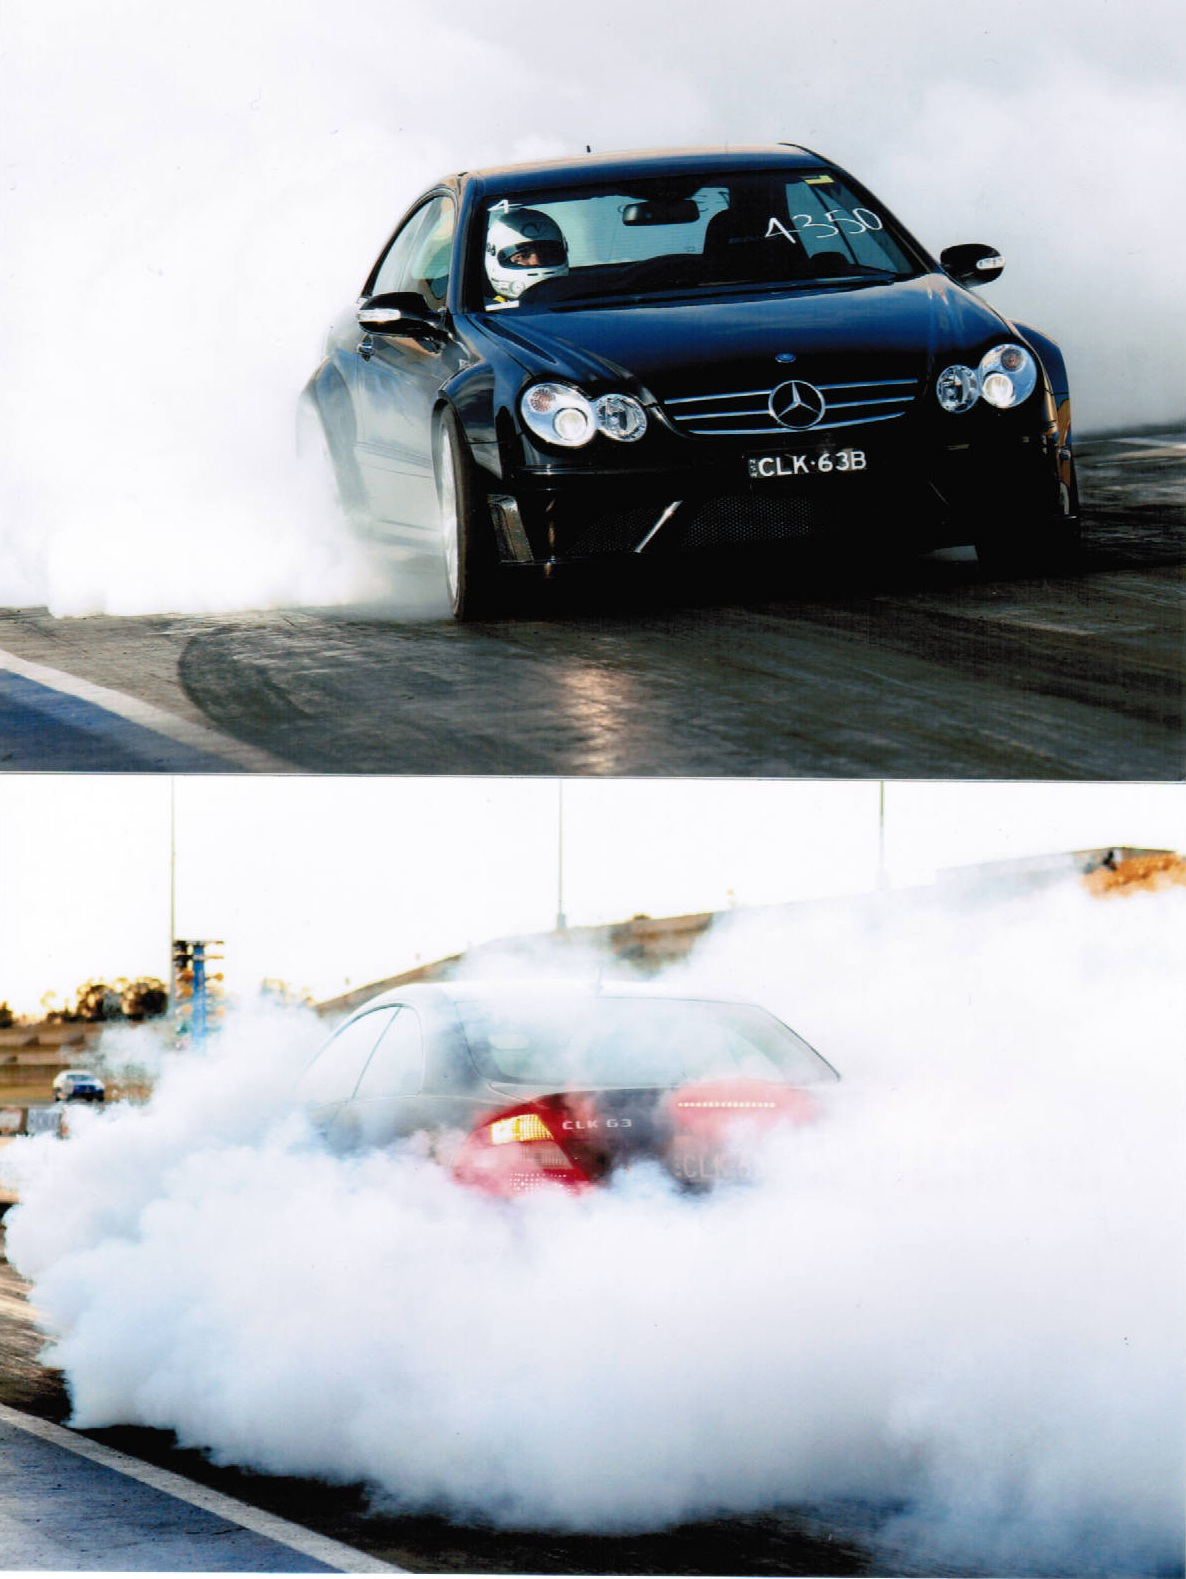 2008 Mercedes-Benz CLK63 AMG black series nitrous